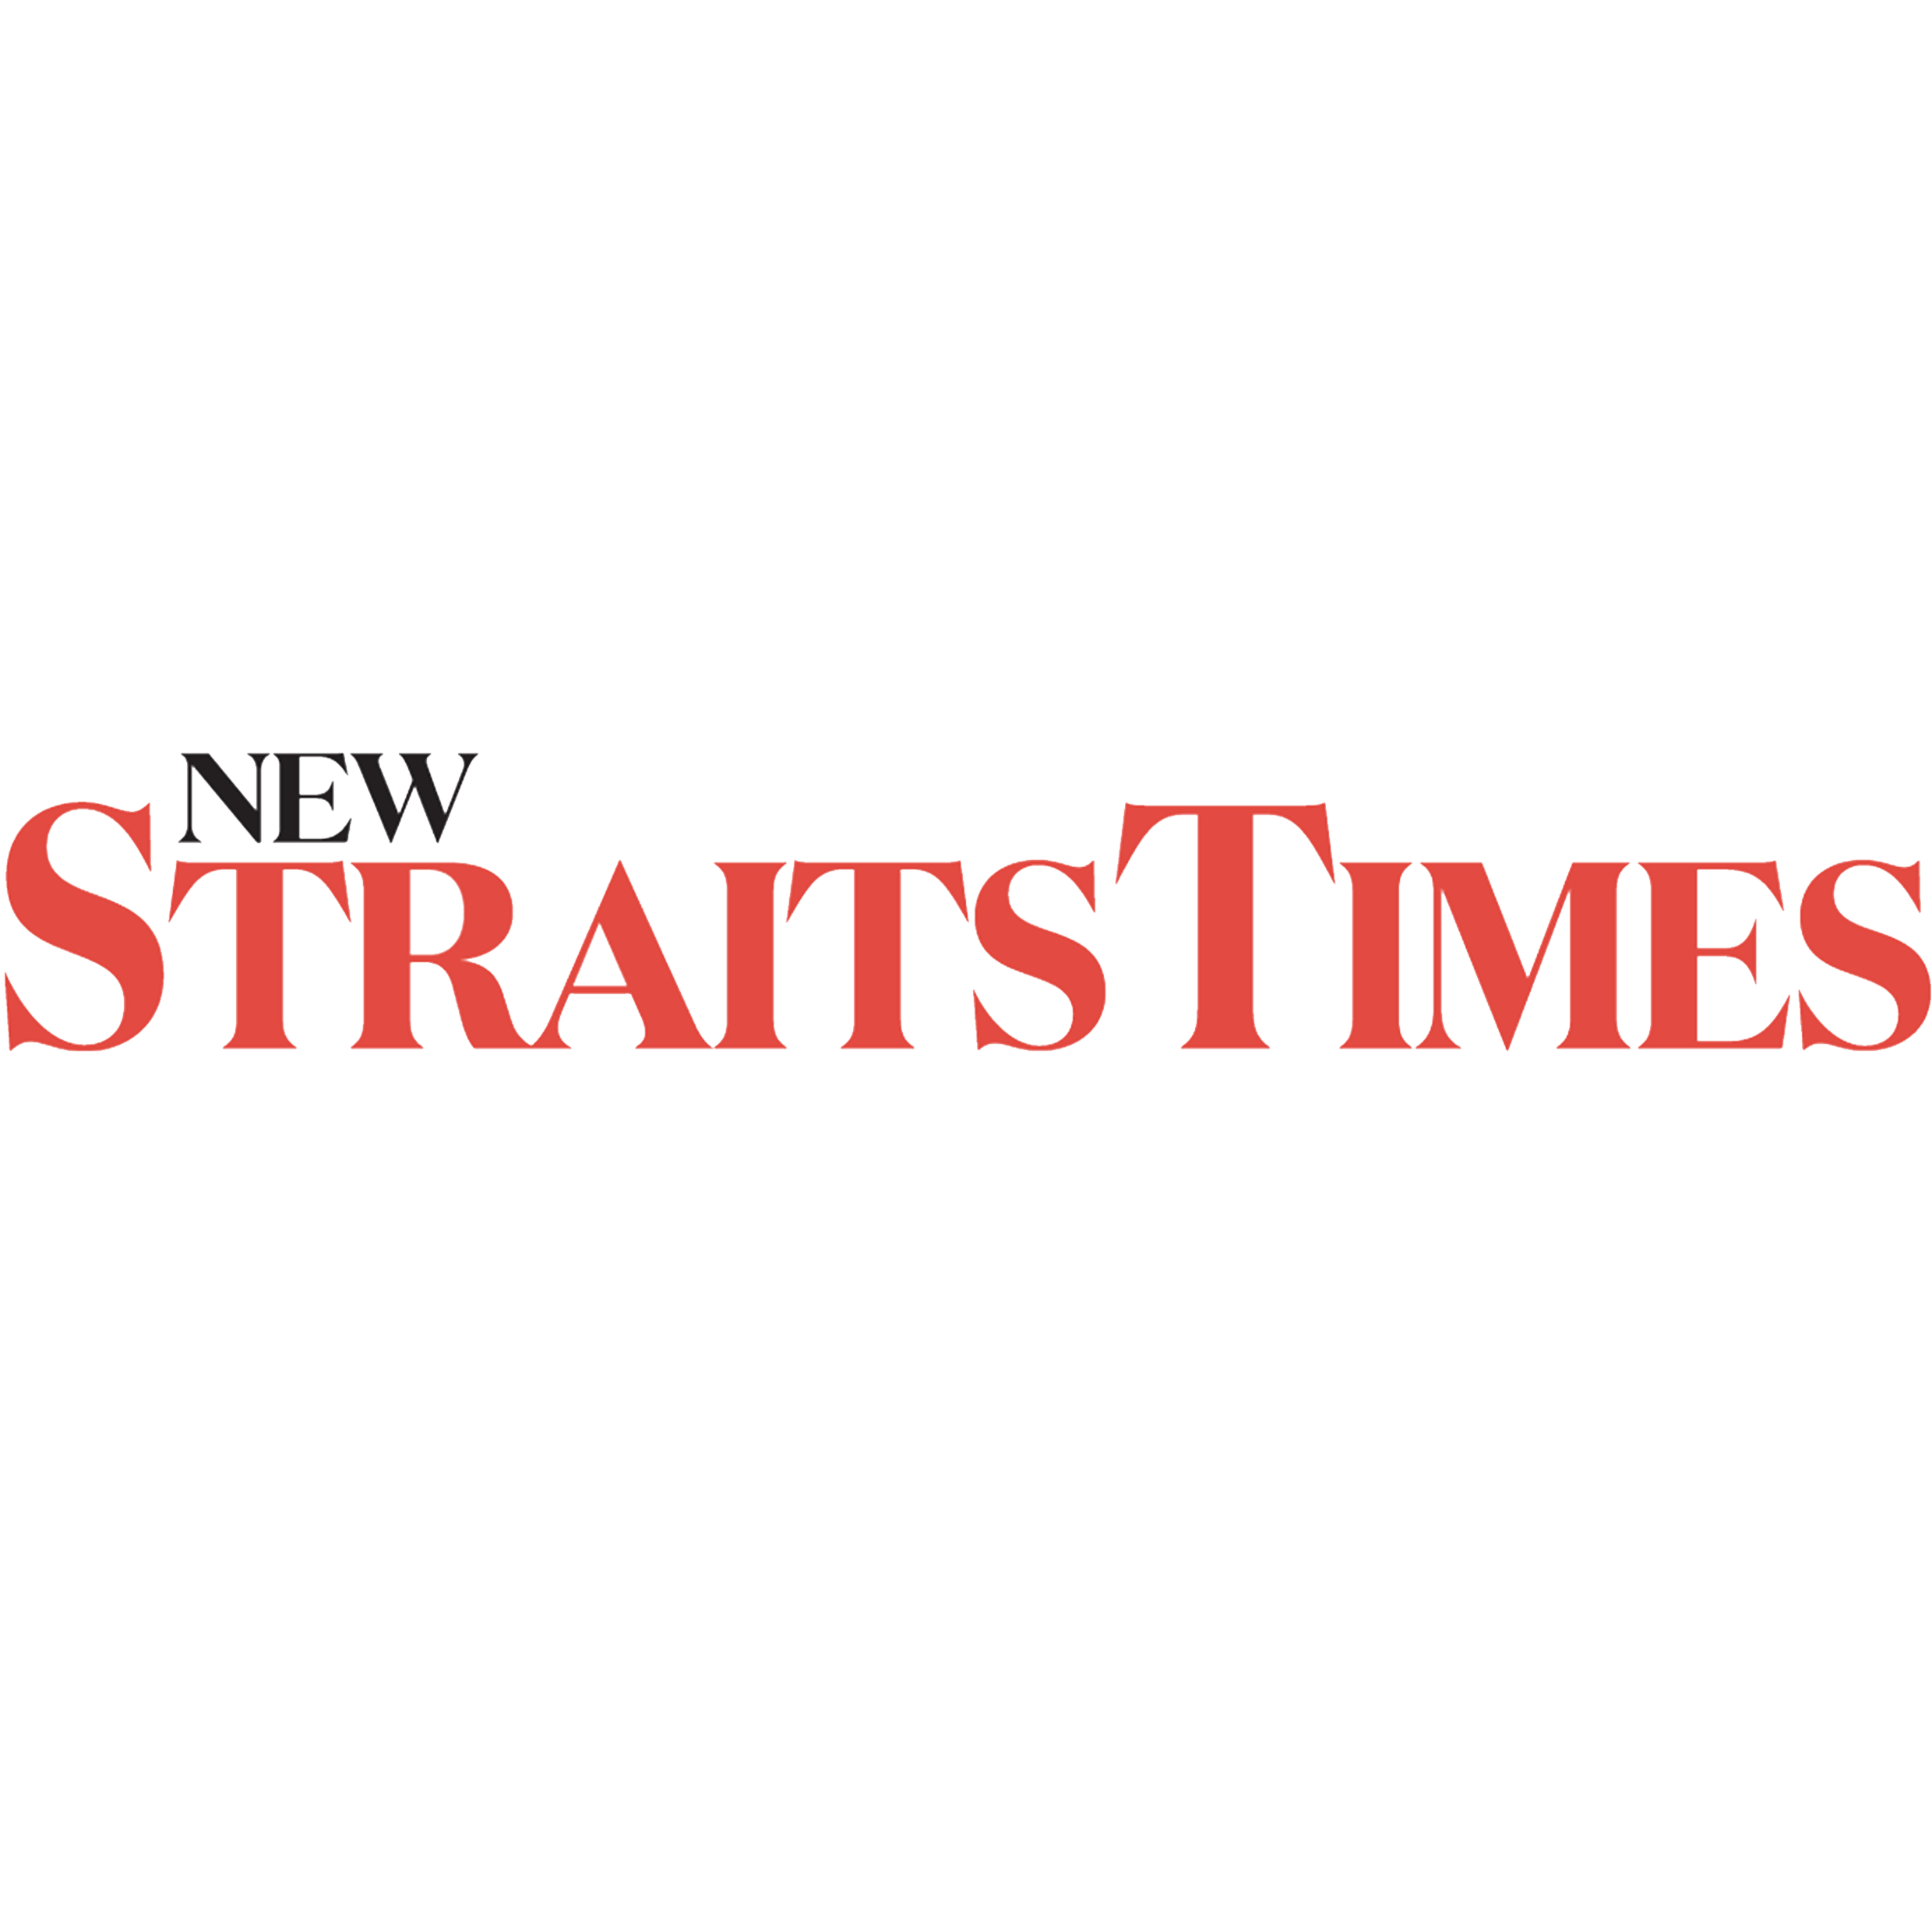 NST.png